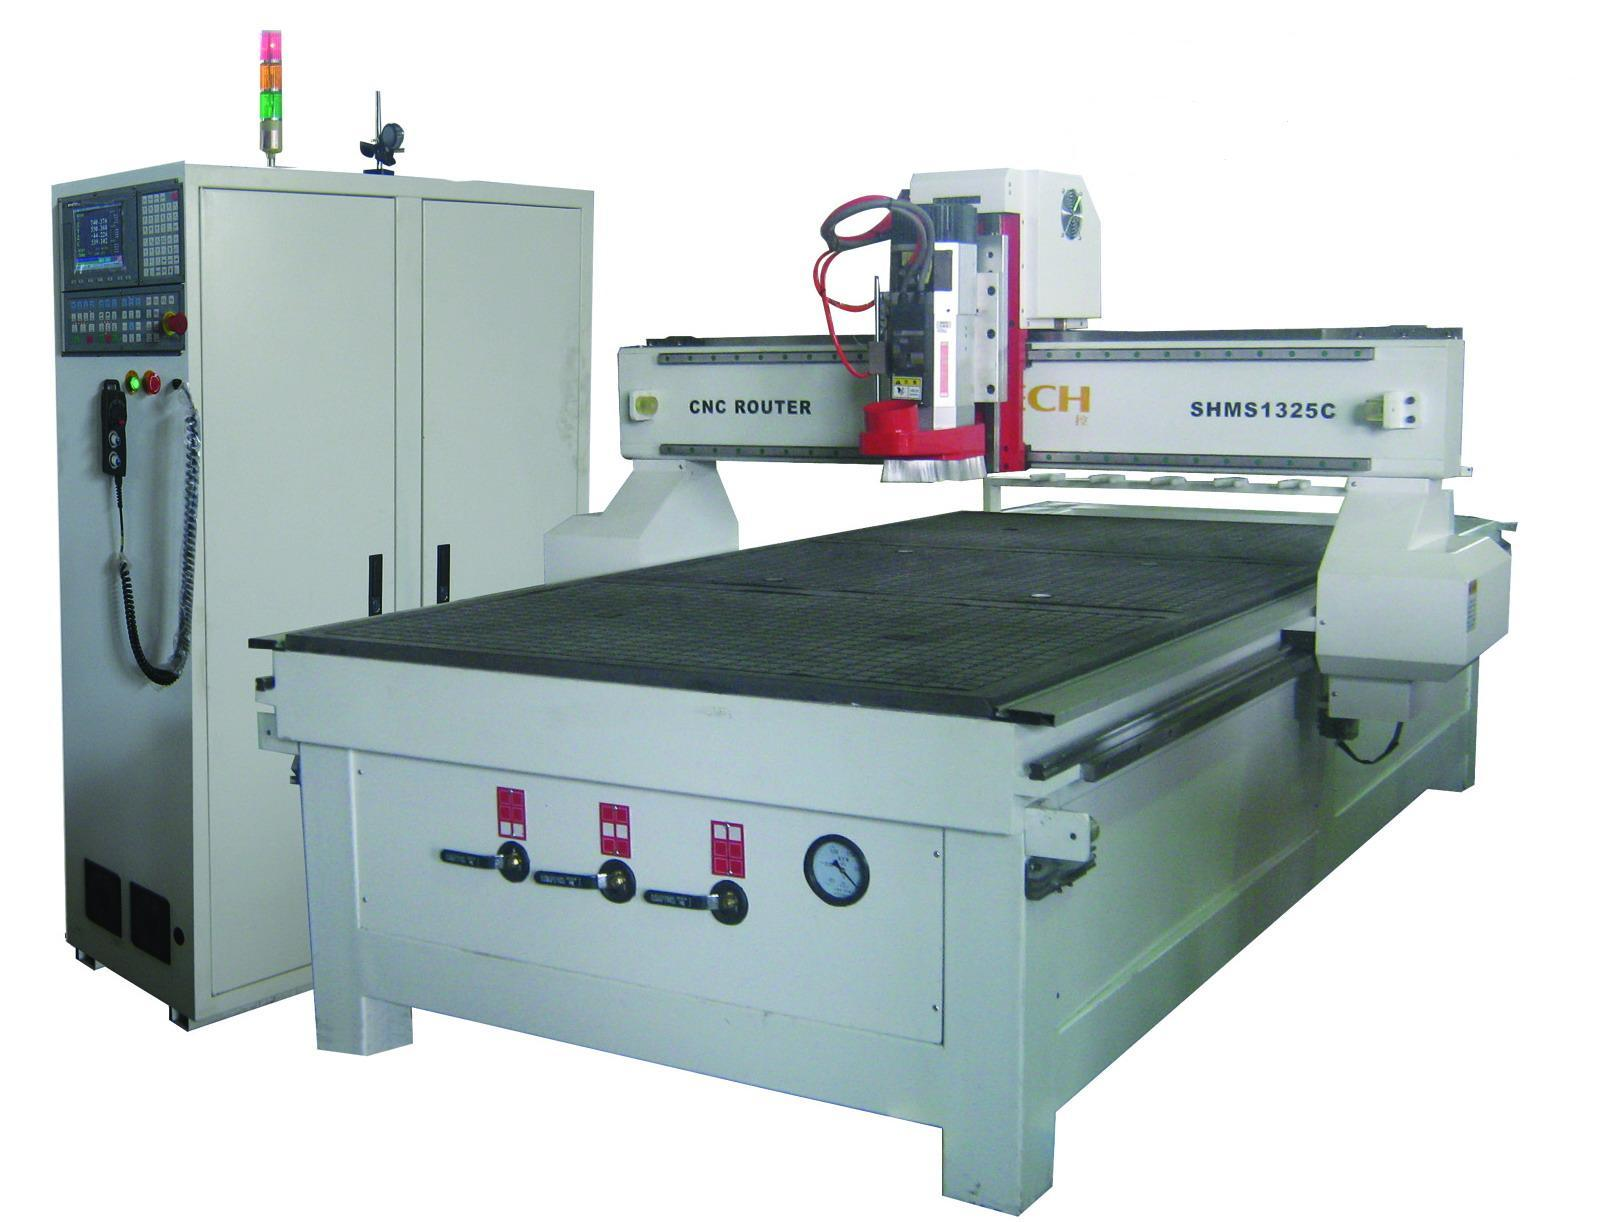 woodworking cnc machines for sale uk | Discover ...